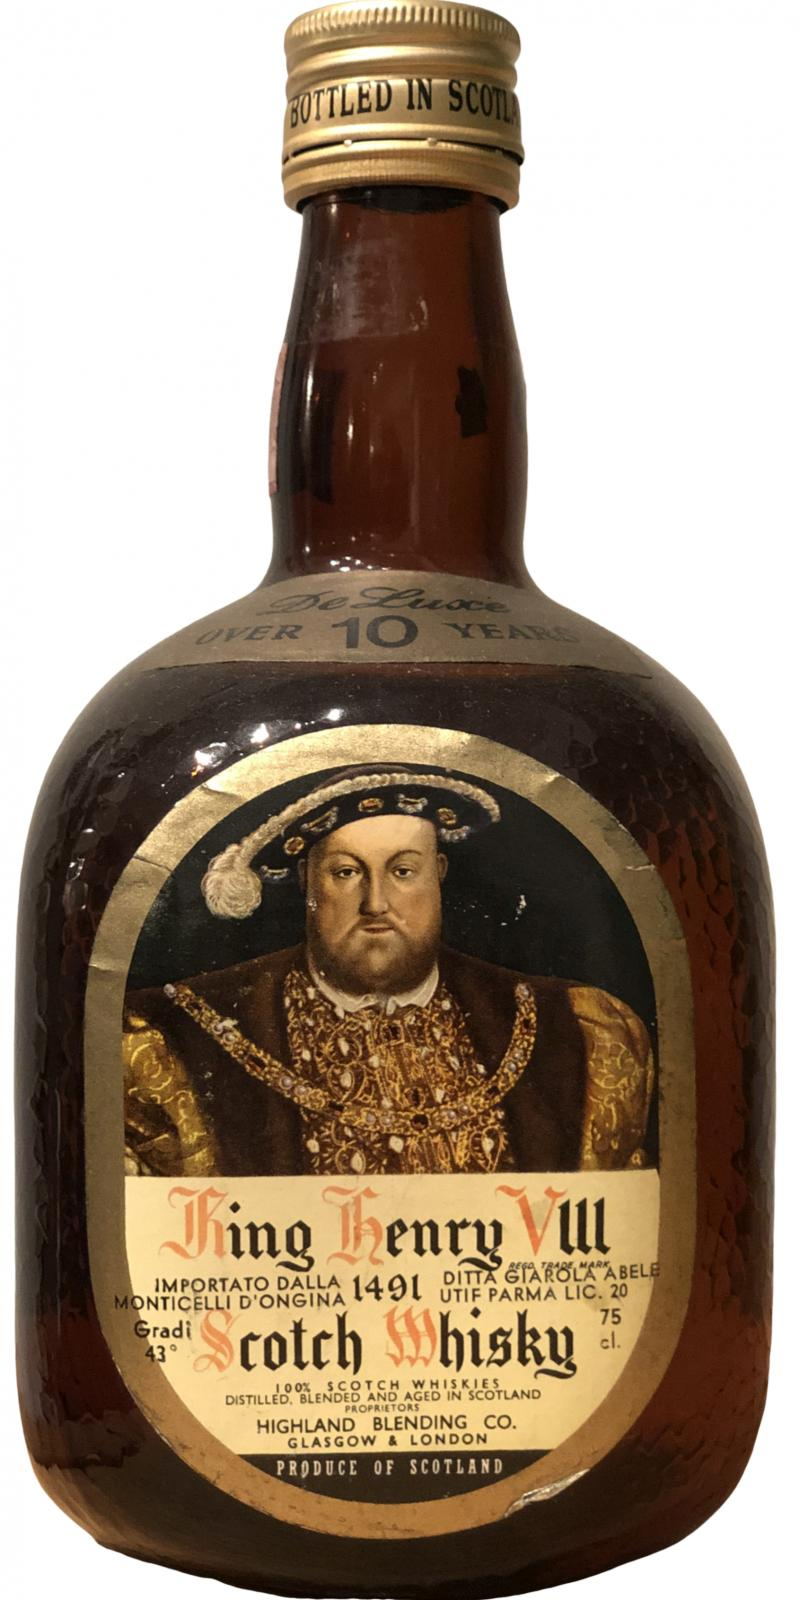 King Henry VIII 10-year-old